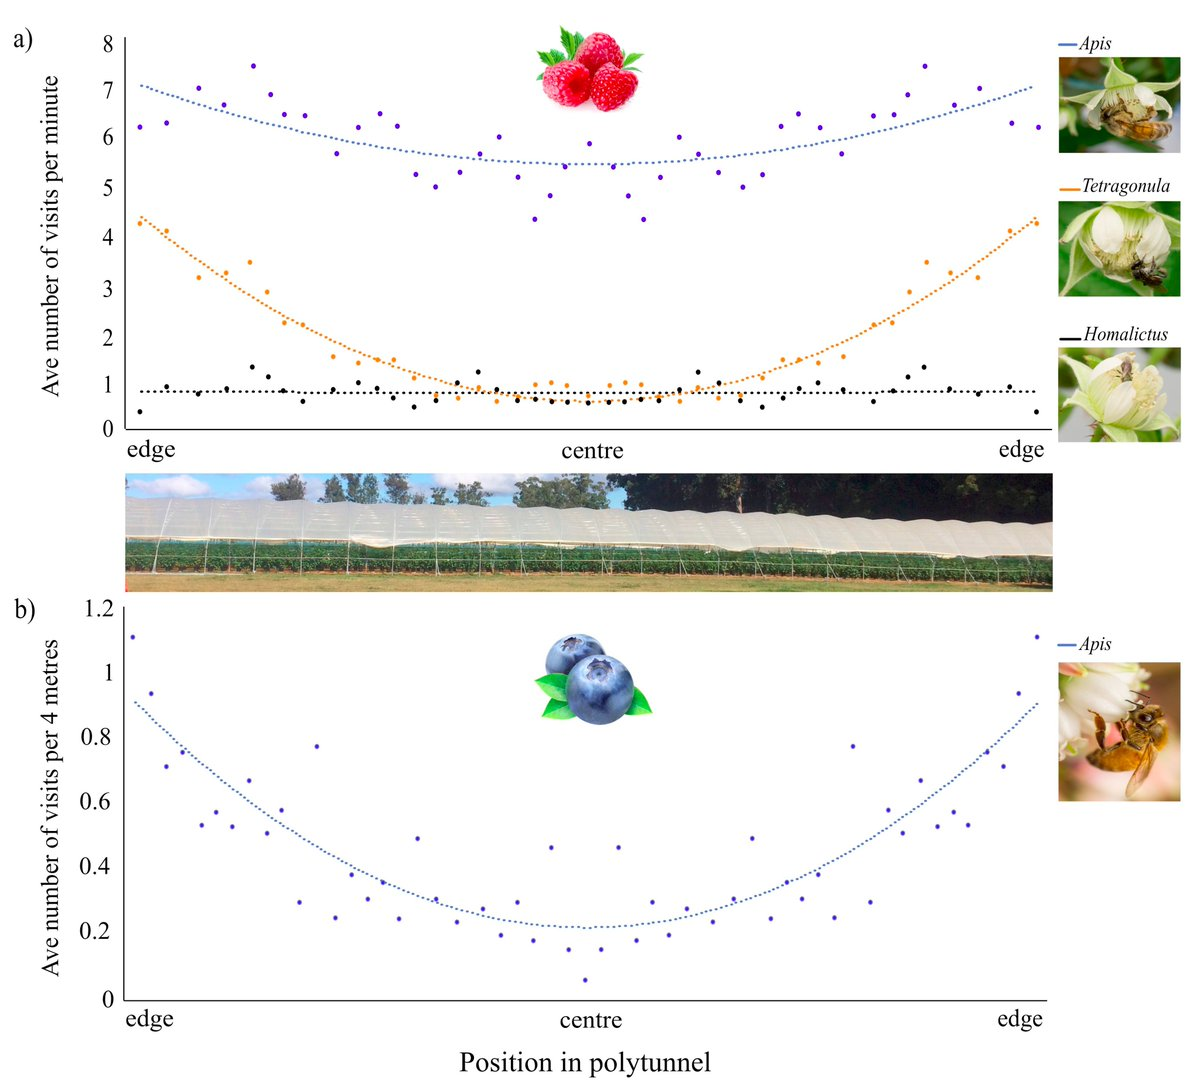 RT @TheBeeEcologist: Recent paper on where stingless and solitary bees and honeybees will forage in polytunnels. We found fewer visits in the middle of tunnels, corresponding with changed climatic conditions. https://t.co/9oSSIo0zhb https://t.co/nwfUH2hojg